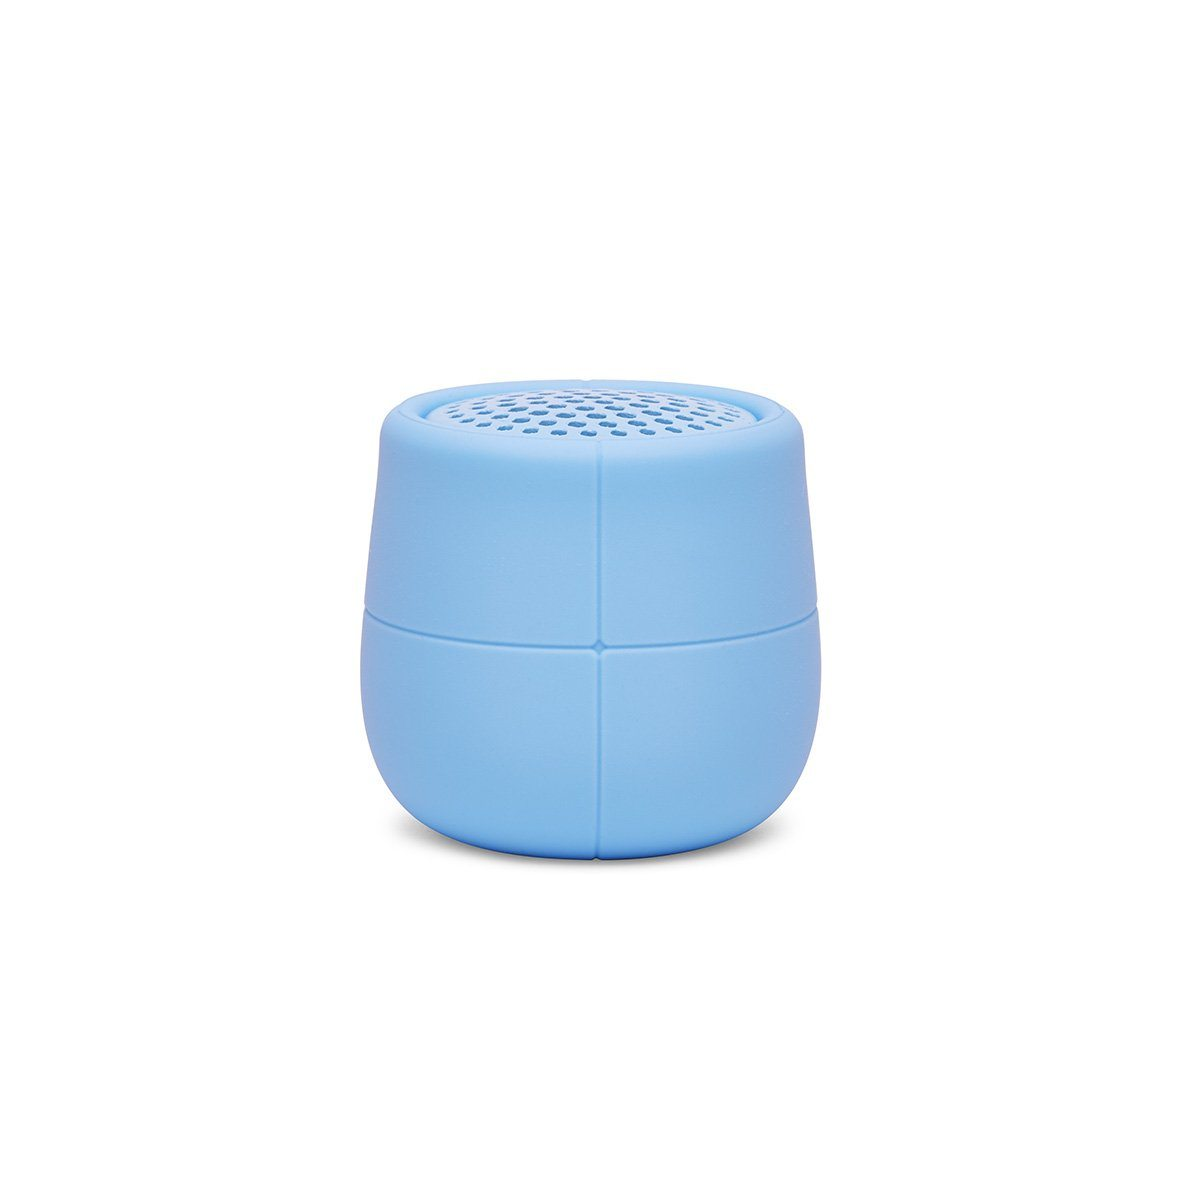 MINO X Floating Bluetooth Speaker - Light Blue